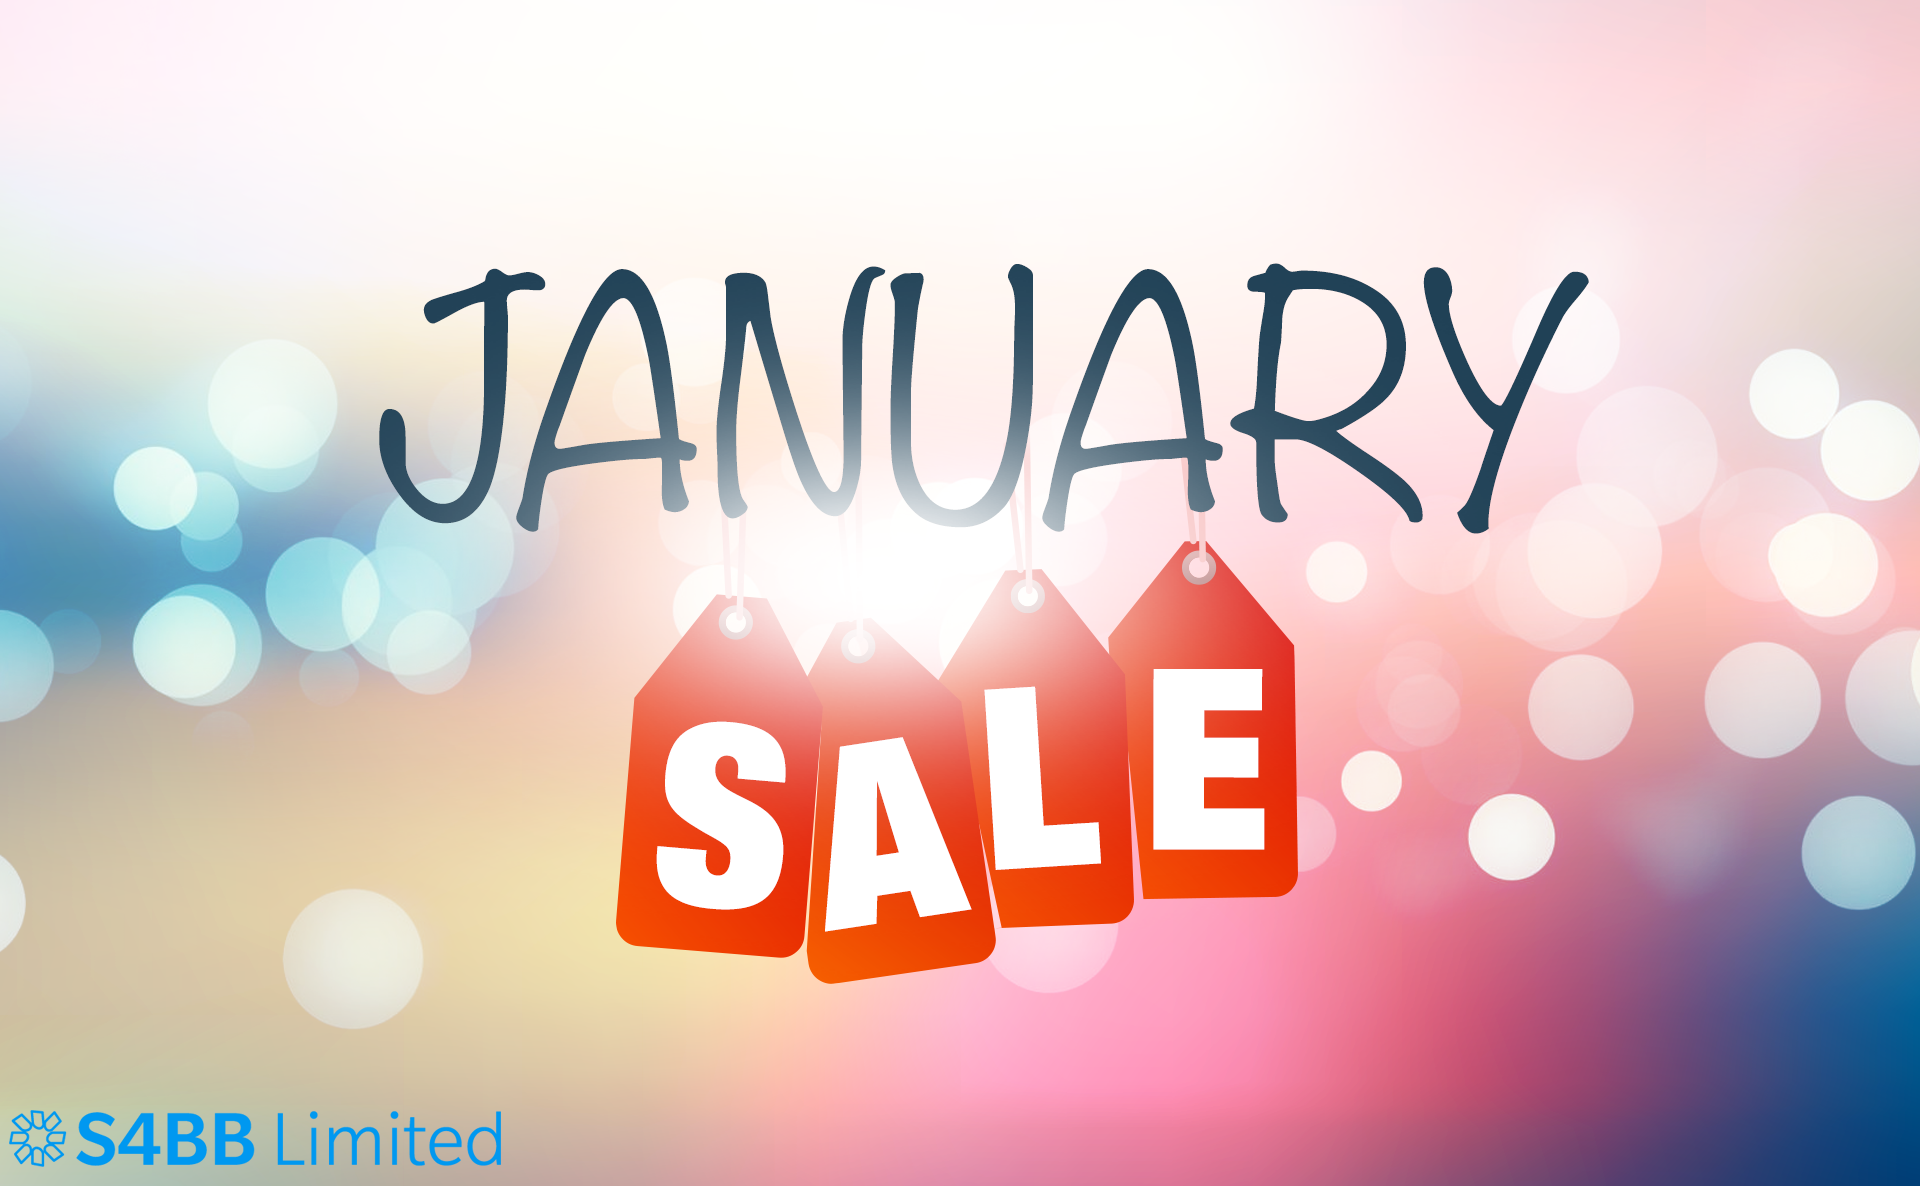 bb-january-sale_s4bb